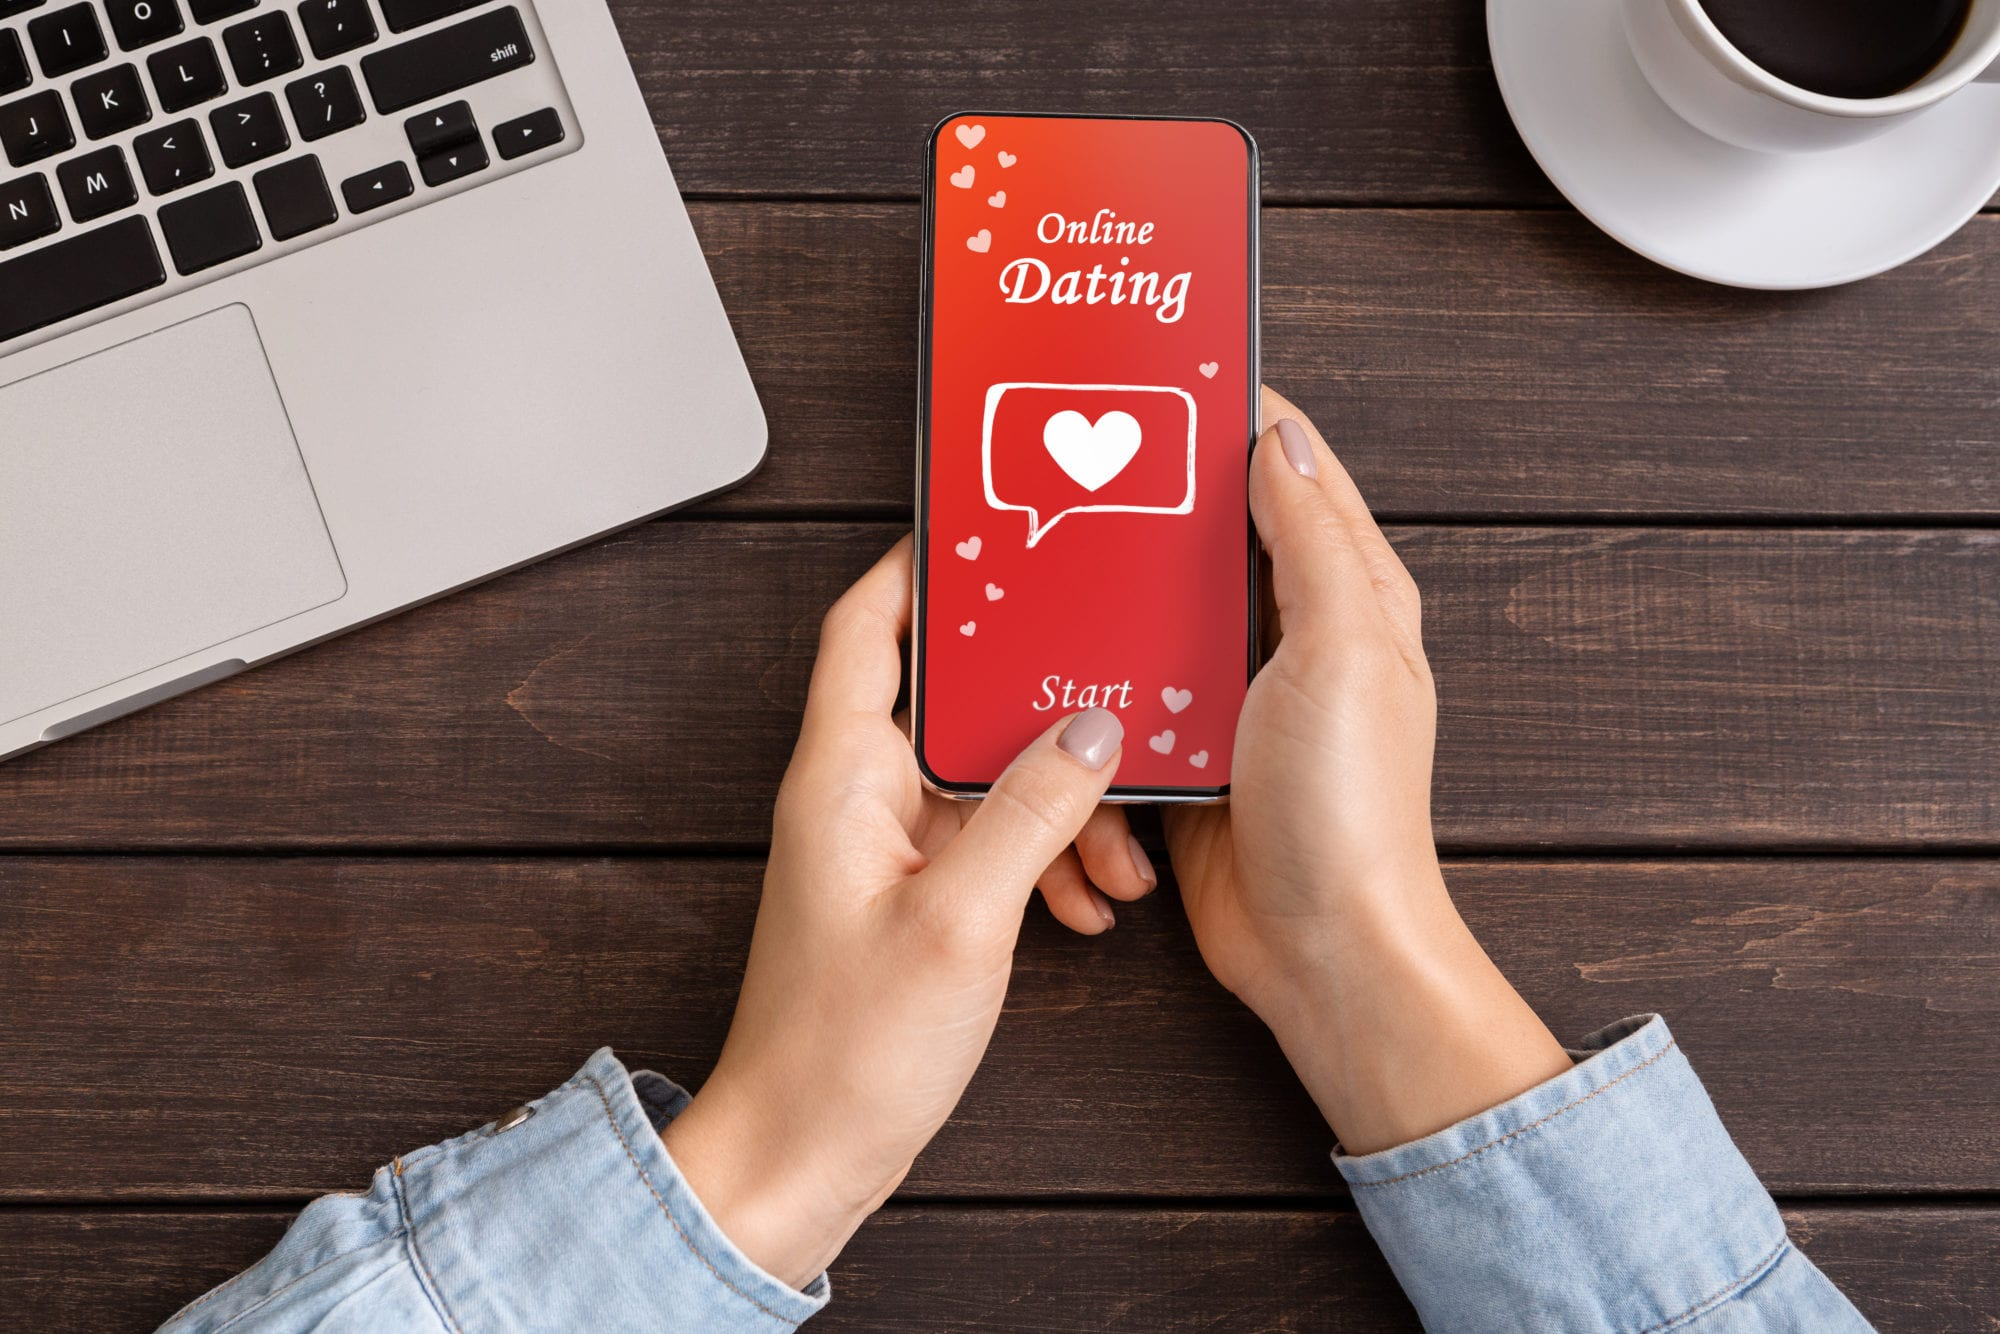 Online dating campaigns